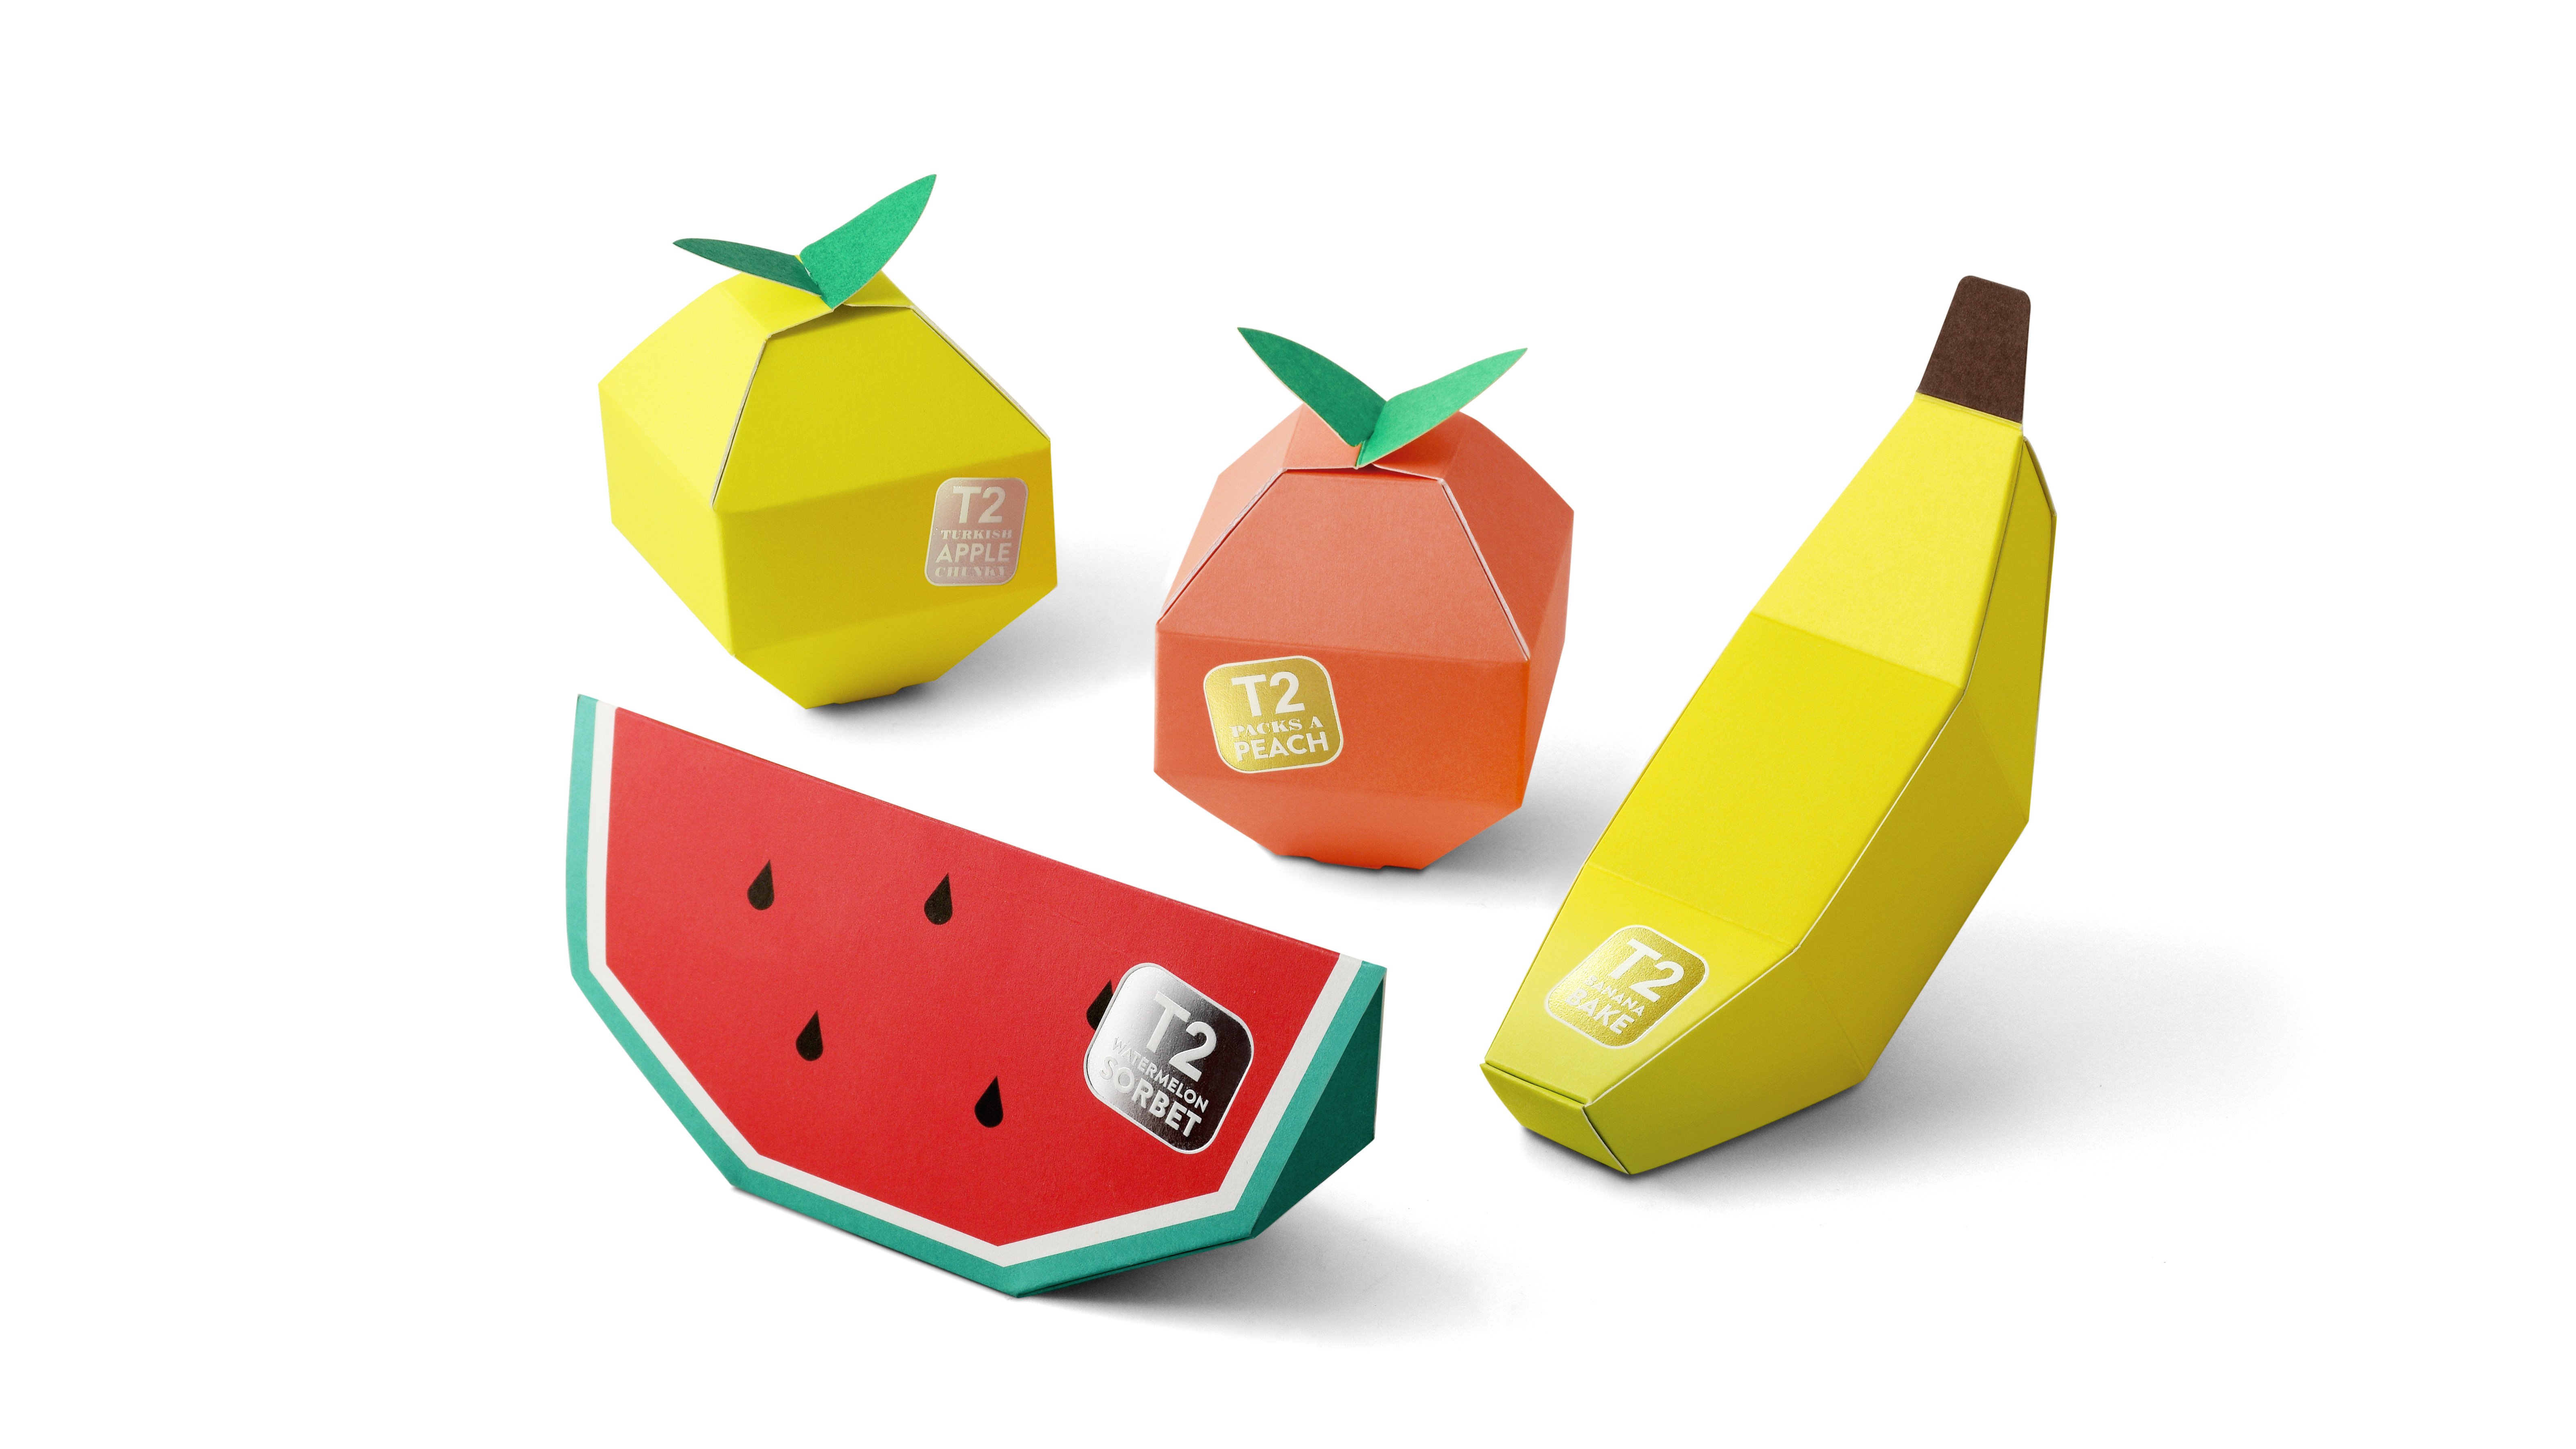 """""""The uncoated side was deliberately selected to echo the natural feel of the fruit and to give a softer texture to the boxes while still reproducing vivid graphics,"""" Metsä Board explains."""